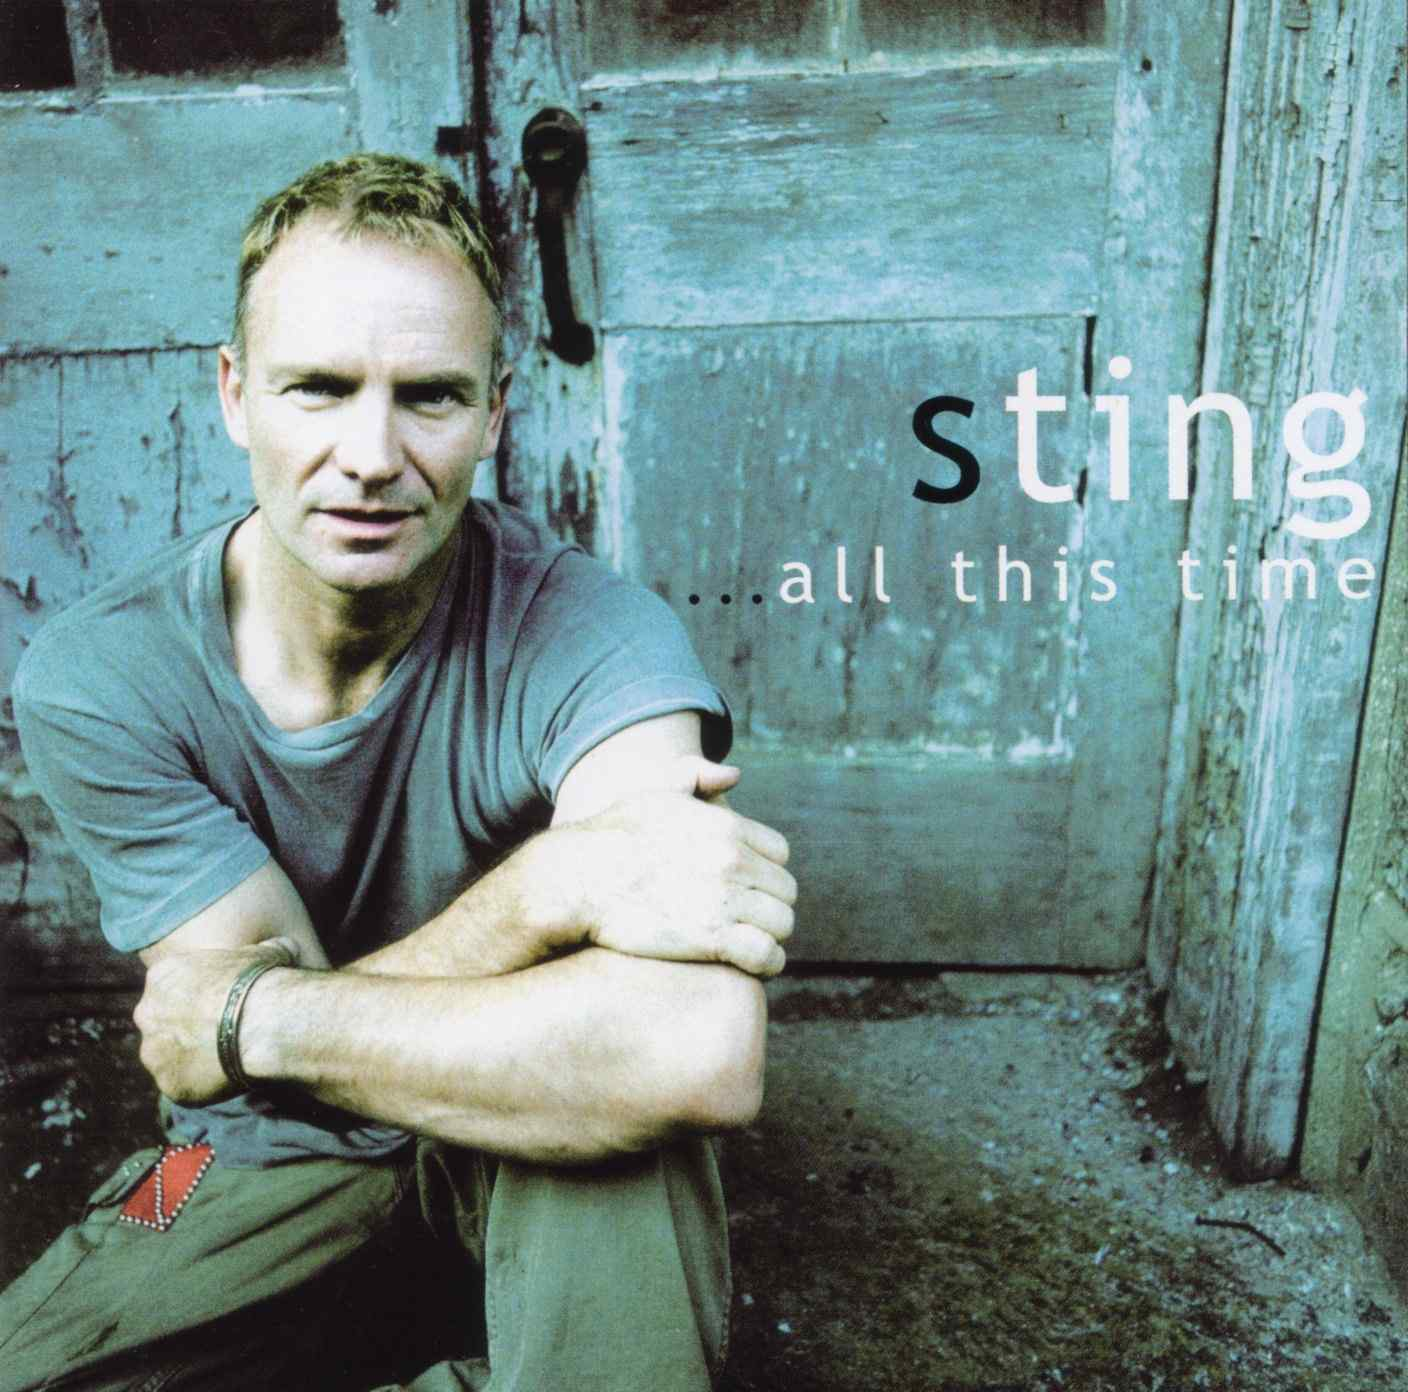 http://bestclub.com.ua/images/Gallery/S/sting/disc/2001_sting_AllThisTime.jpg